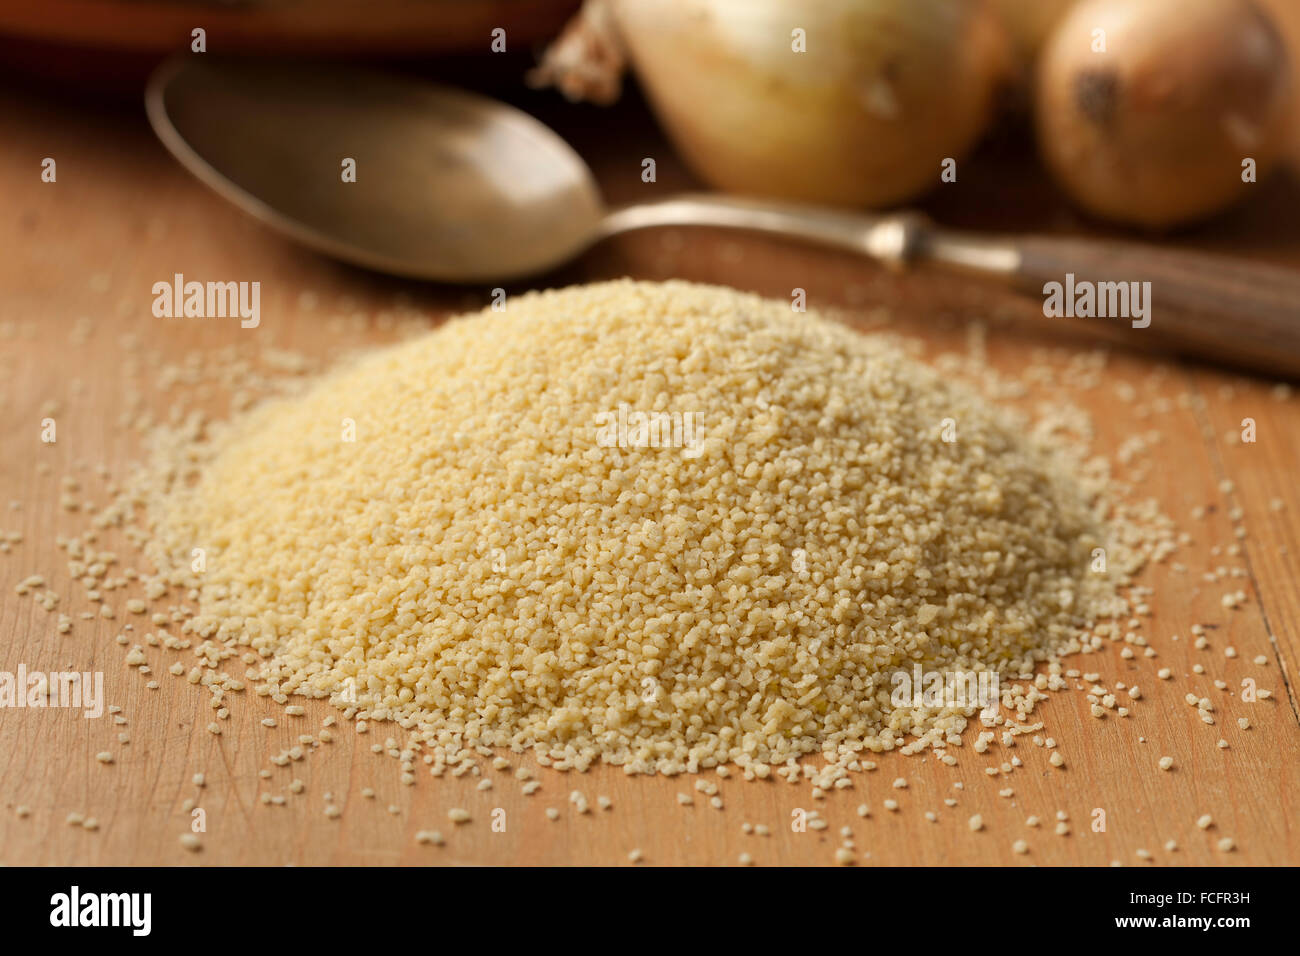 Raw couscous grains, popular food in North African countries - Stock Image